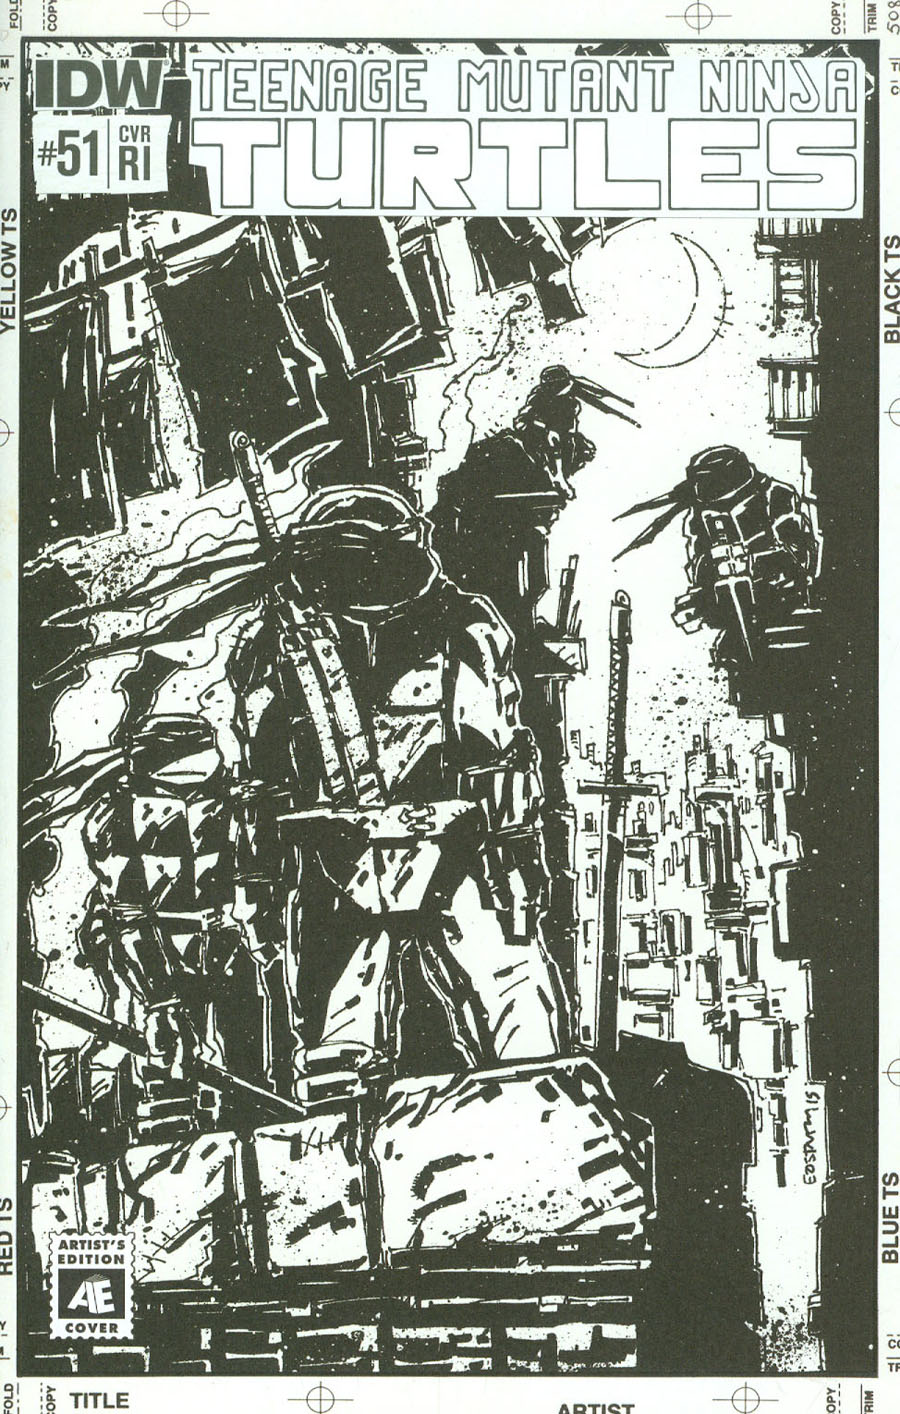 Teenage Mutant Ninja Turtles Vol 5 #51 Cover C Incentive Kevin Eastman Artists Edition Variant Cover